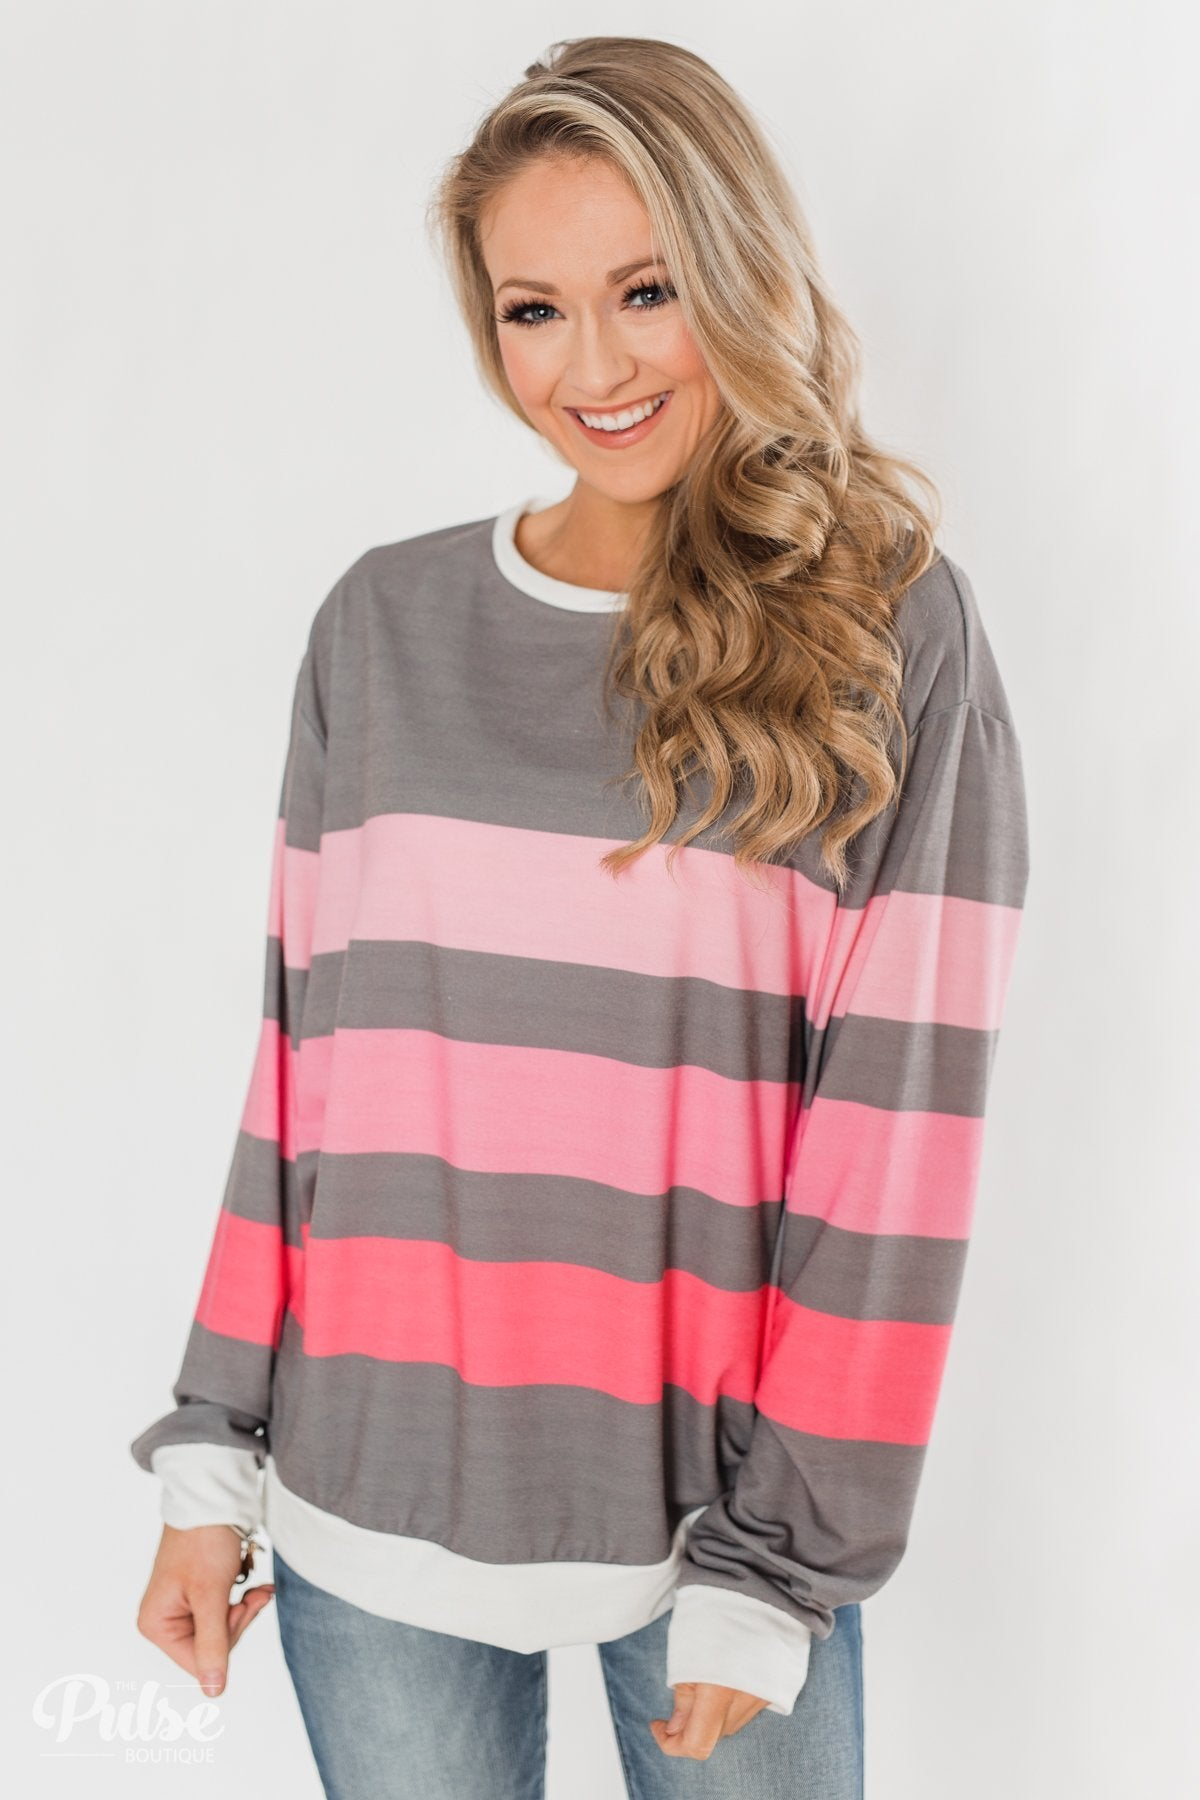 Spring's Pink Dream Striped Top - Comment Sold